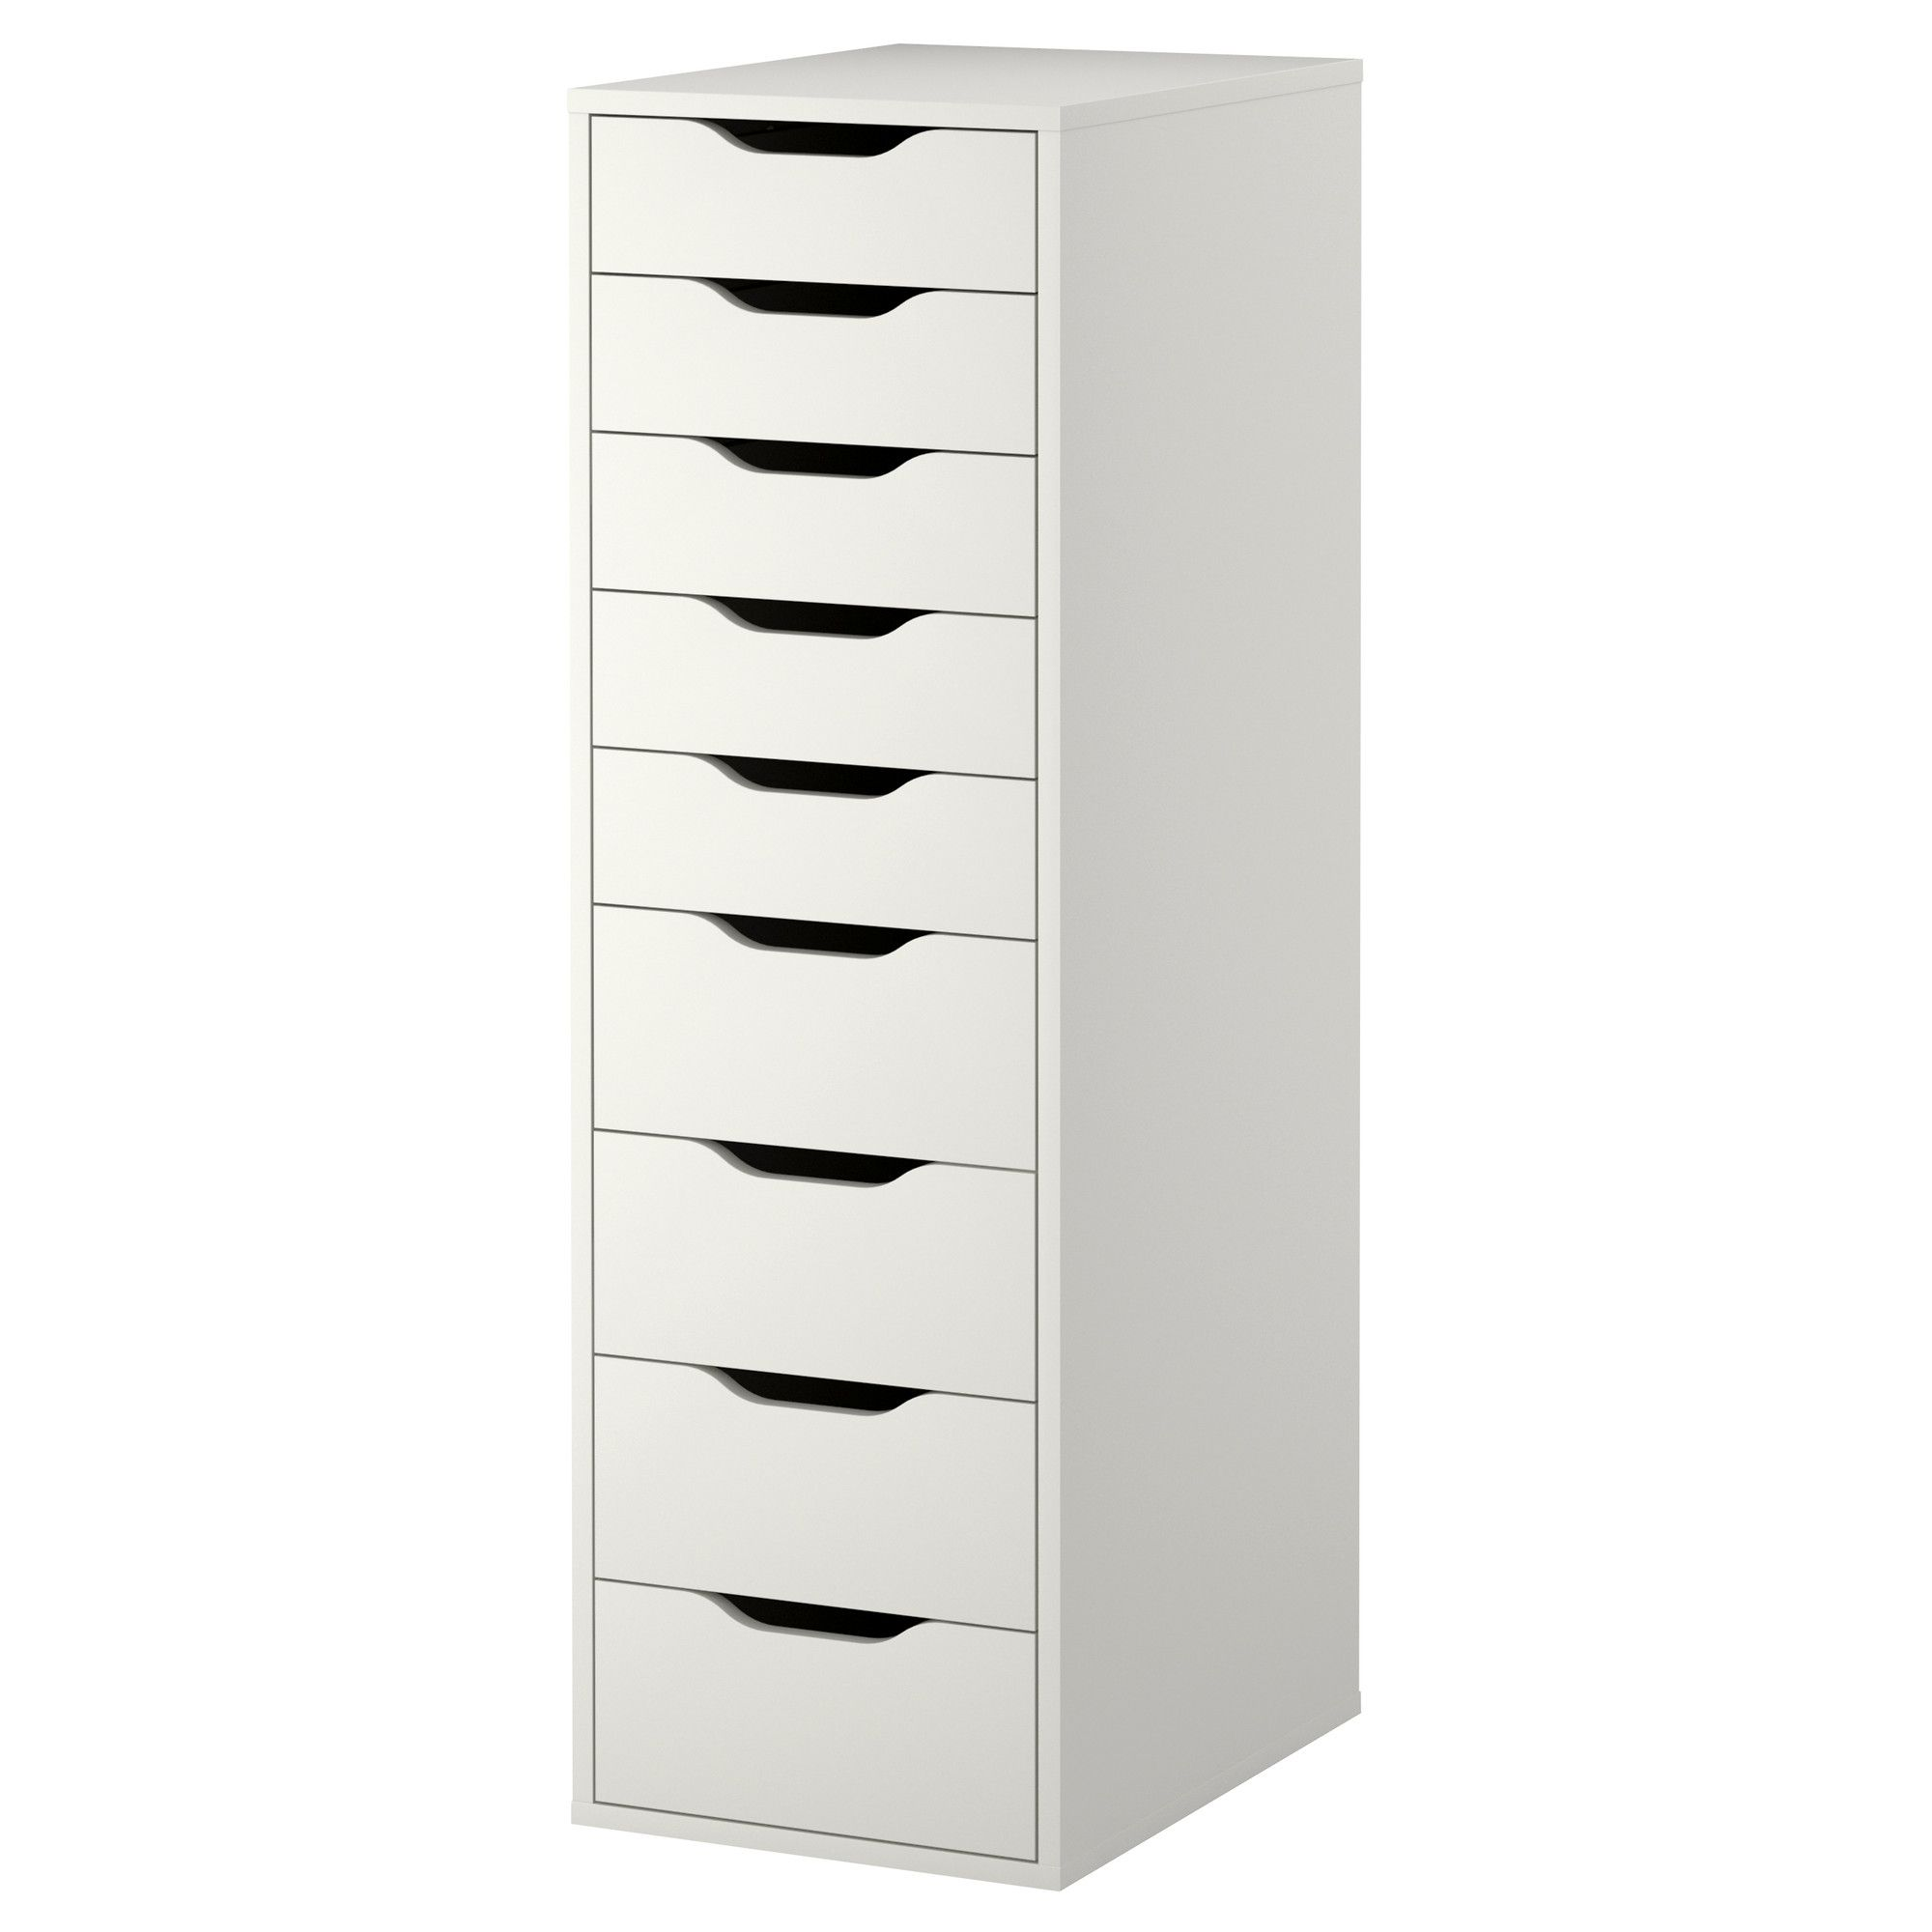 Alex Drawer Unit With 9 Drawers White 14 1 8x45 5 8